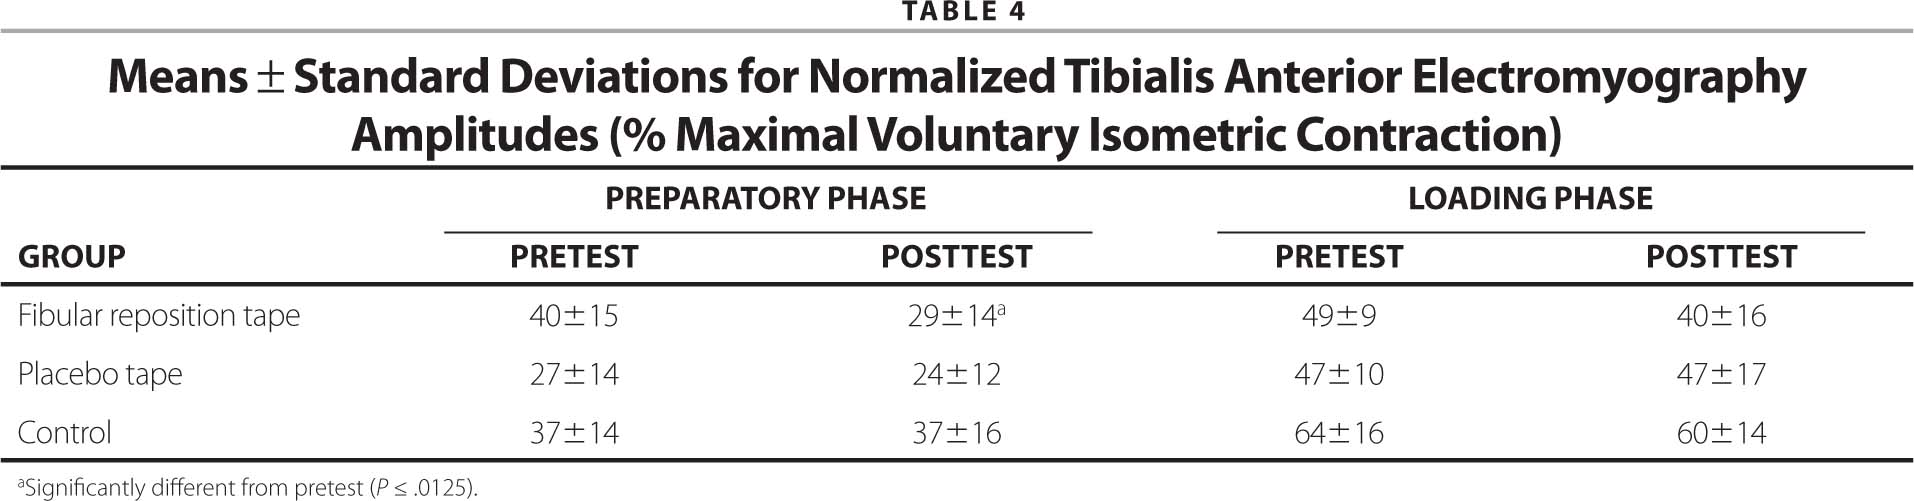 Means ± Standard Deviations for Normalized Tibialis Anterior Electromyography Amplitudes (% Maximal Voluntary Isometric Contraction)